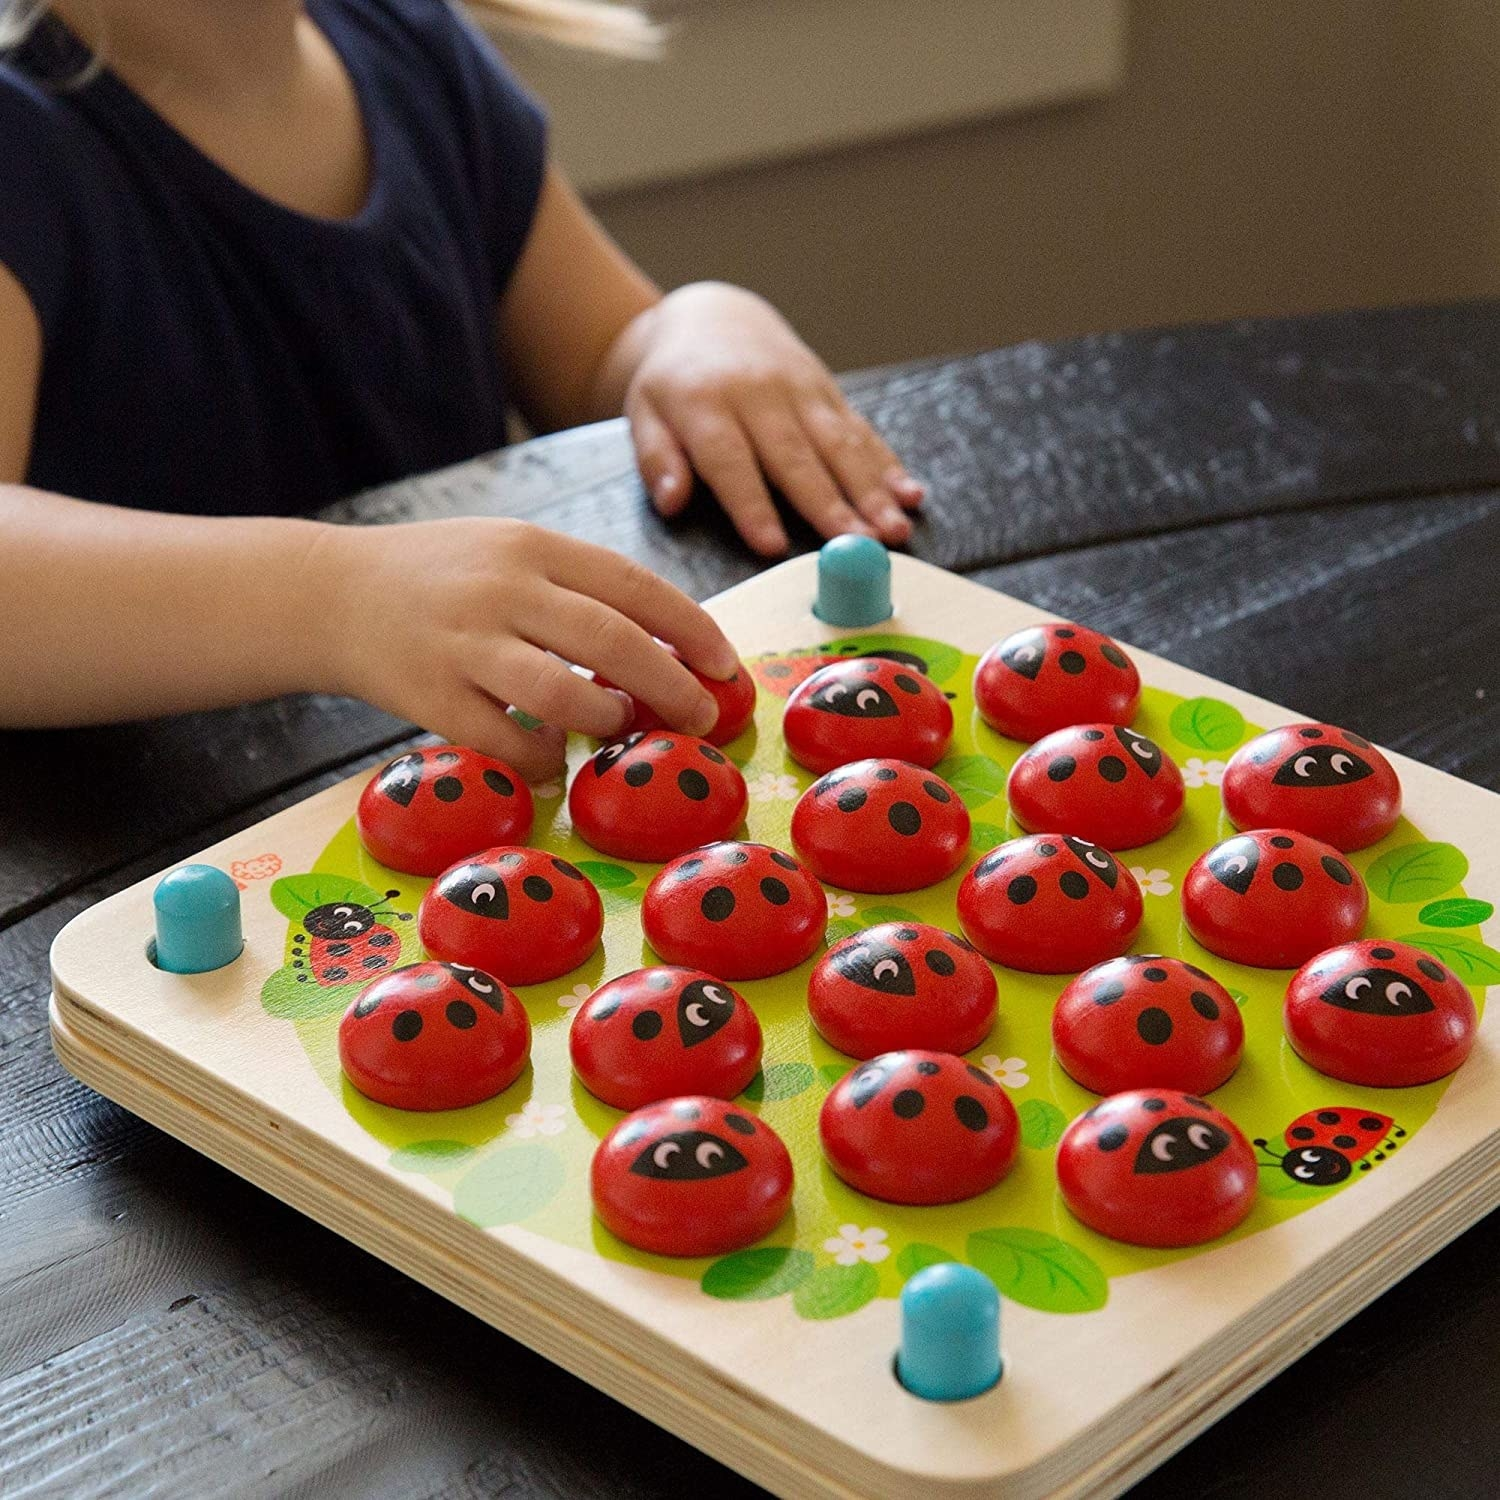 Close-up of a child's hands as they flip over the ladybug piece